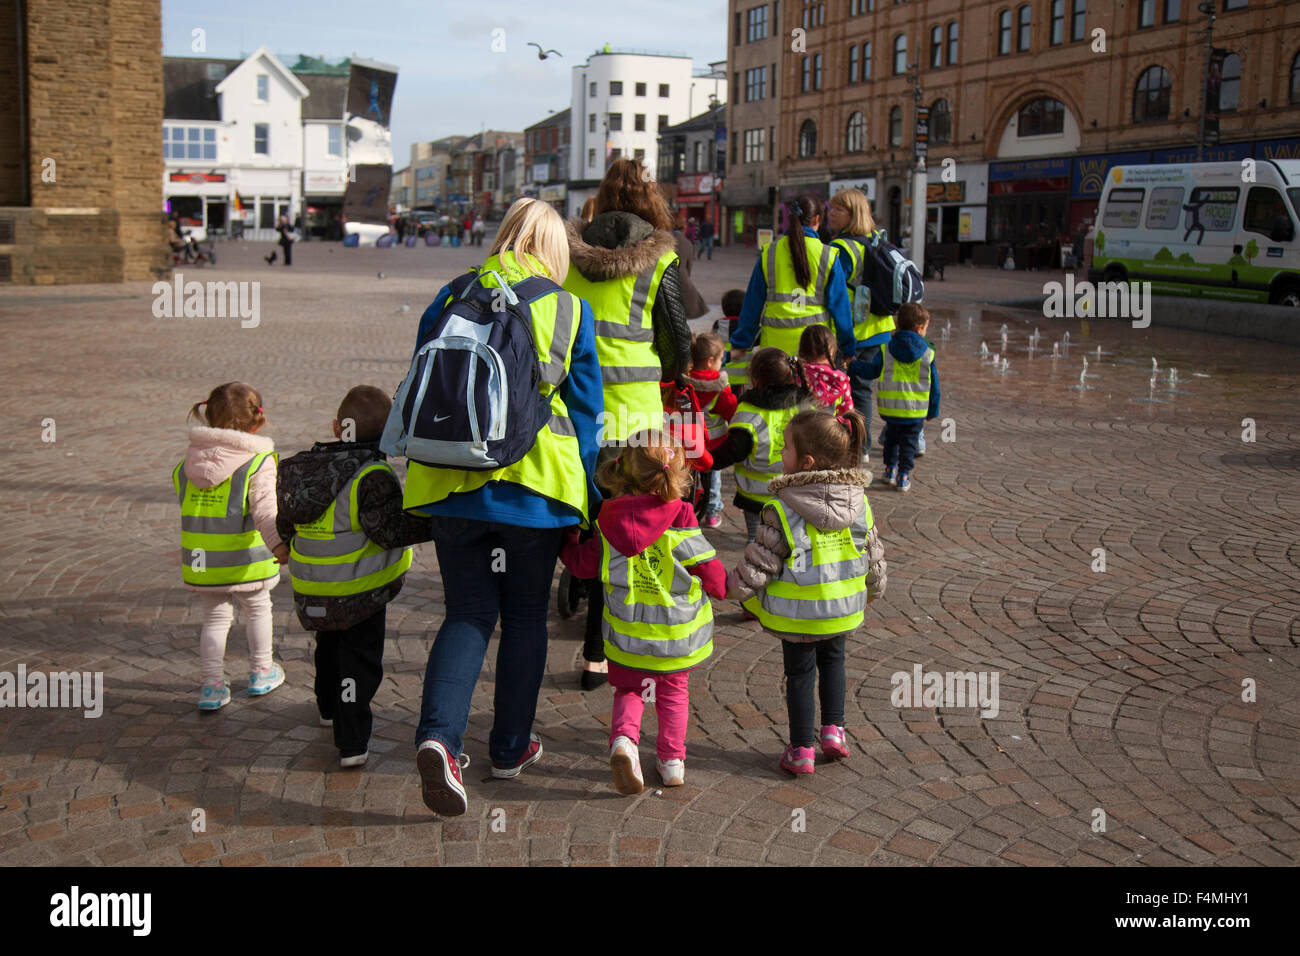 Safeguarding Pre-School primary children wearing protective fluorescent hi-vis hazard jackets on walk around Blackpool - Stock Image